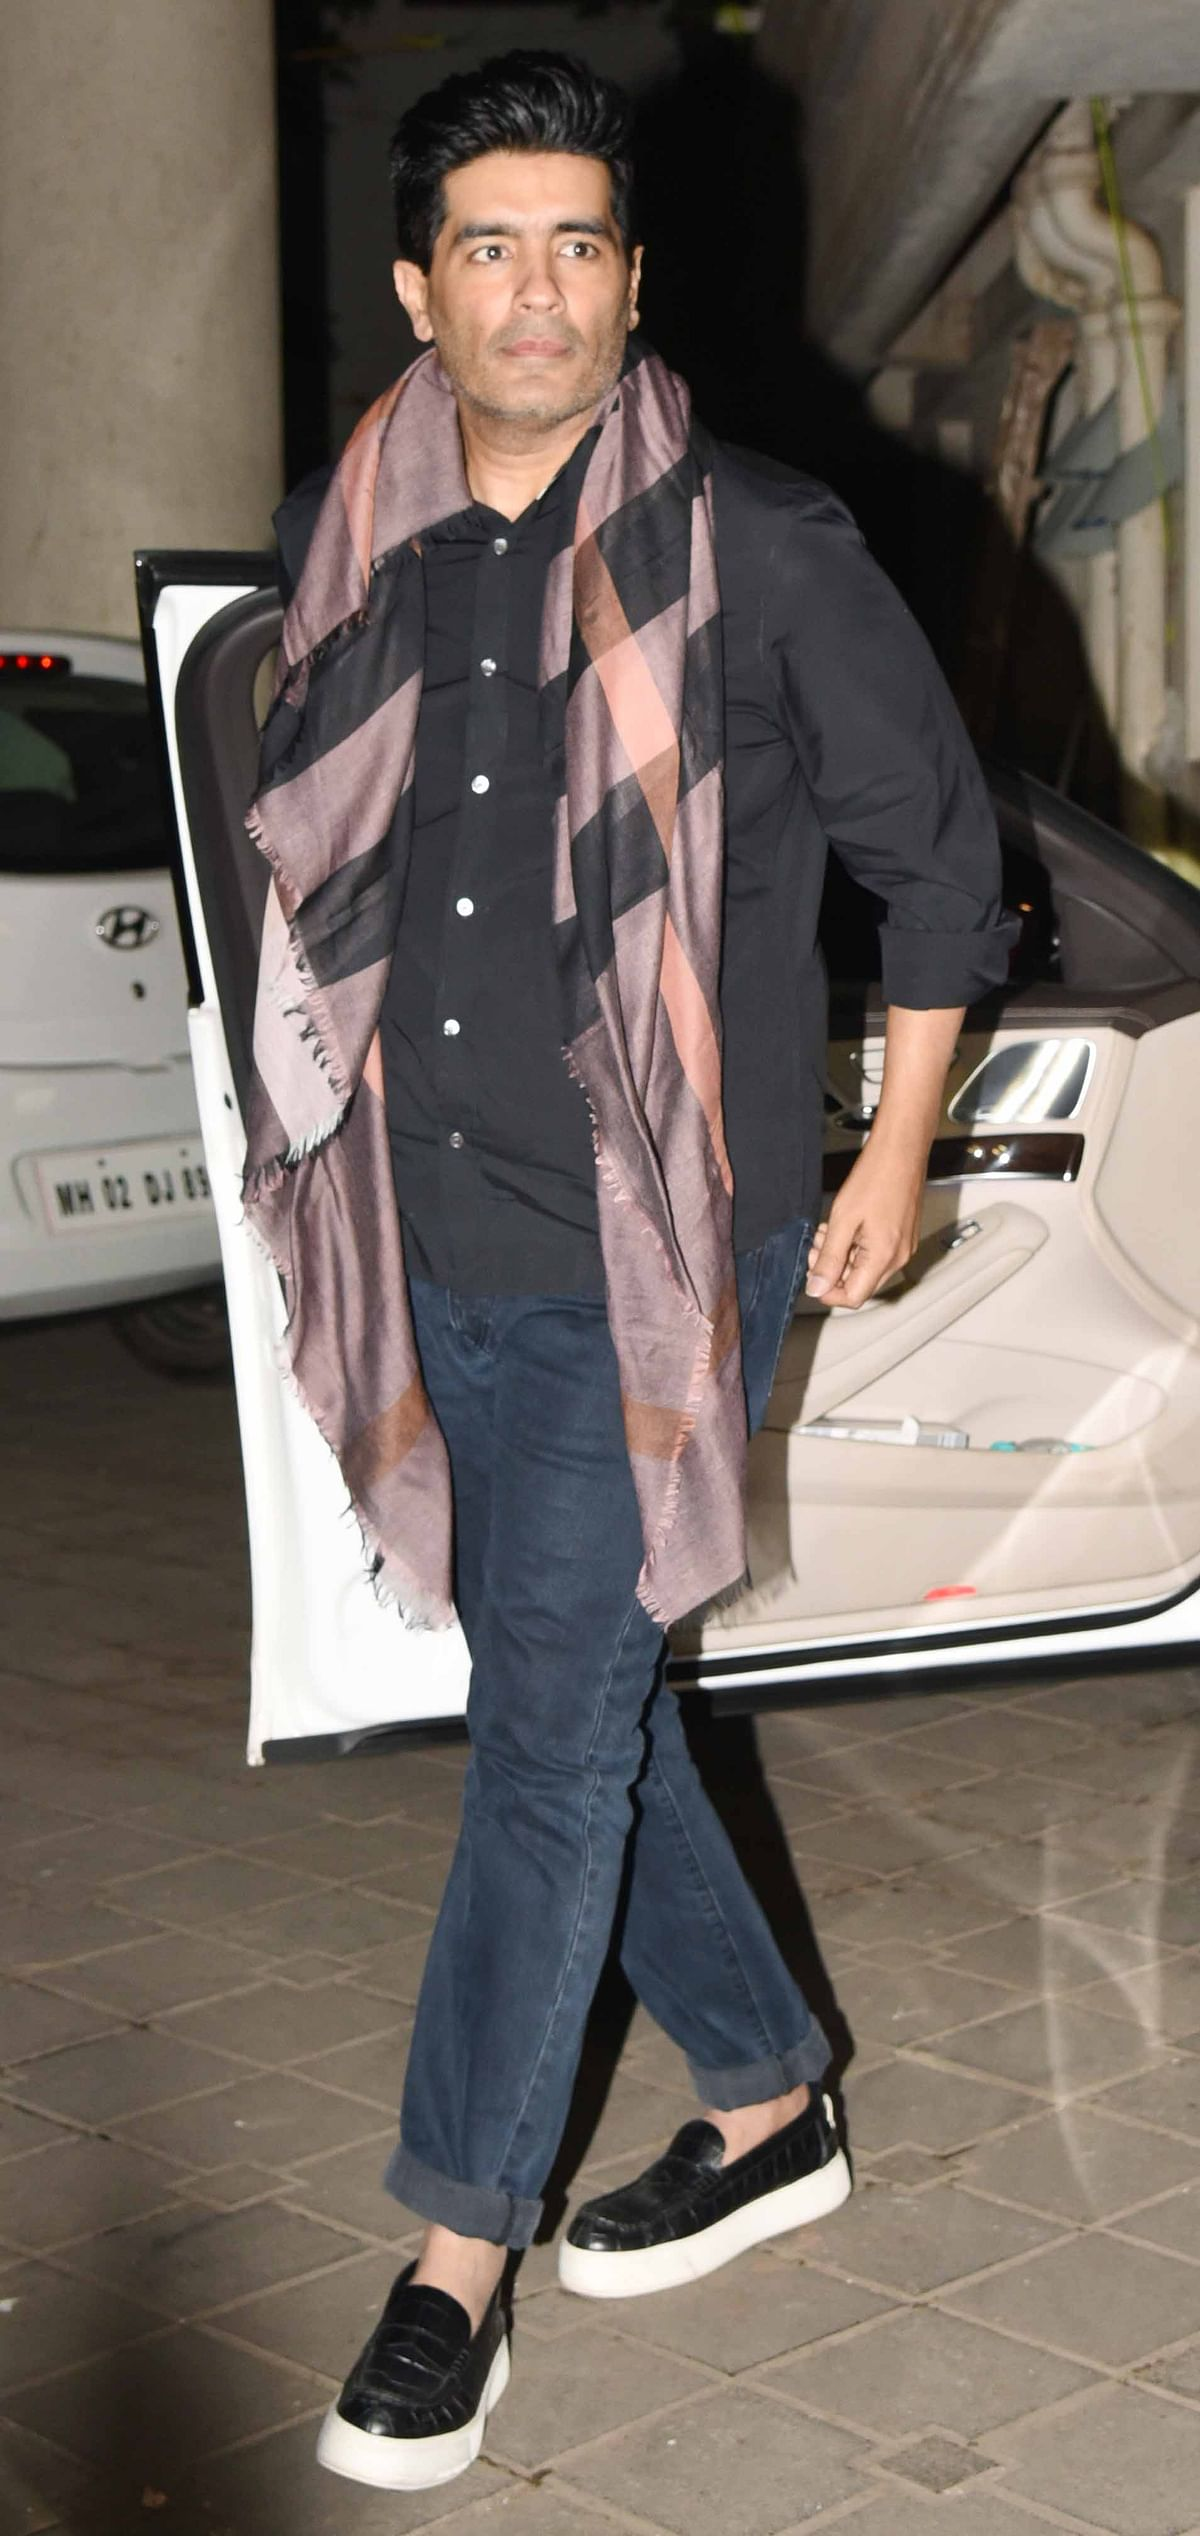 Manish Malhotra arriving for the party. (Photo: Yogen Shah)